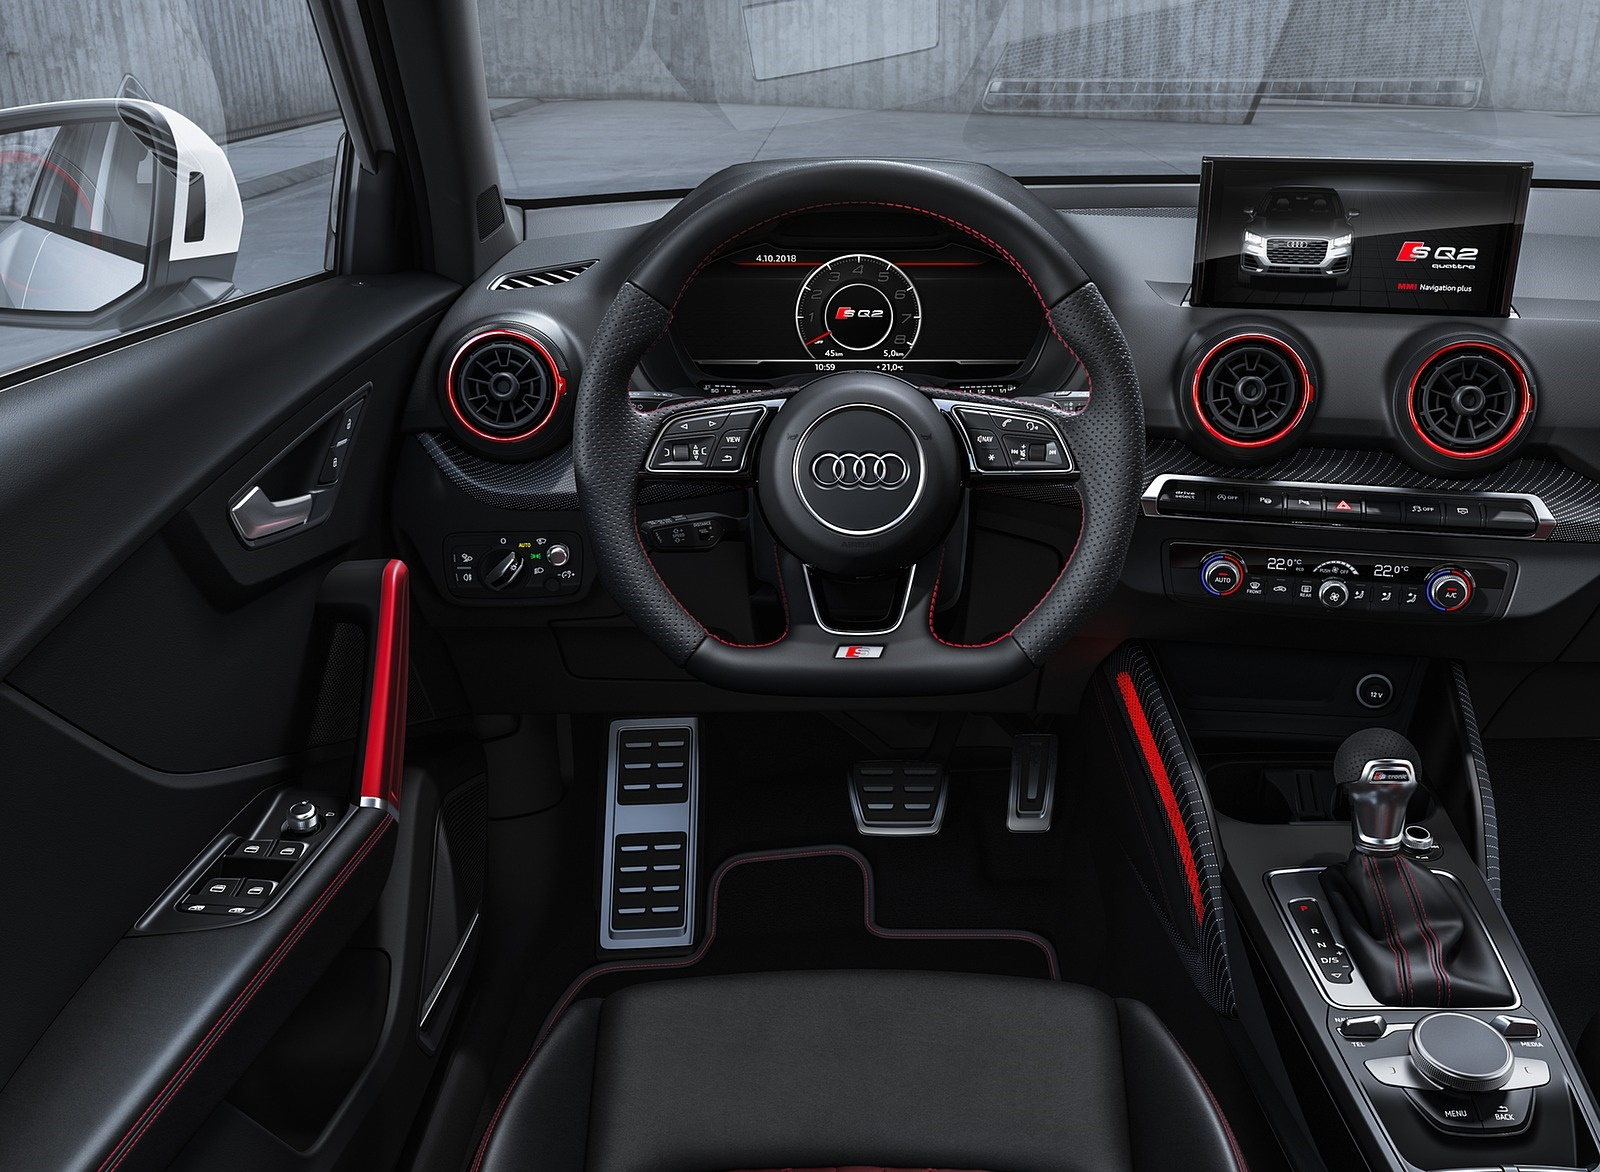 2019 Audi SQ2 Wallpapers (16+ HD Images) - NewCarCars